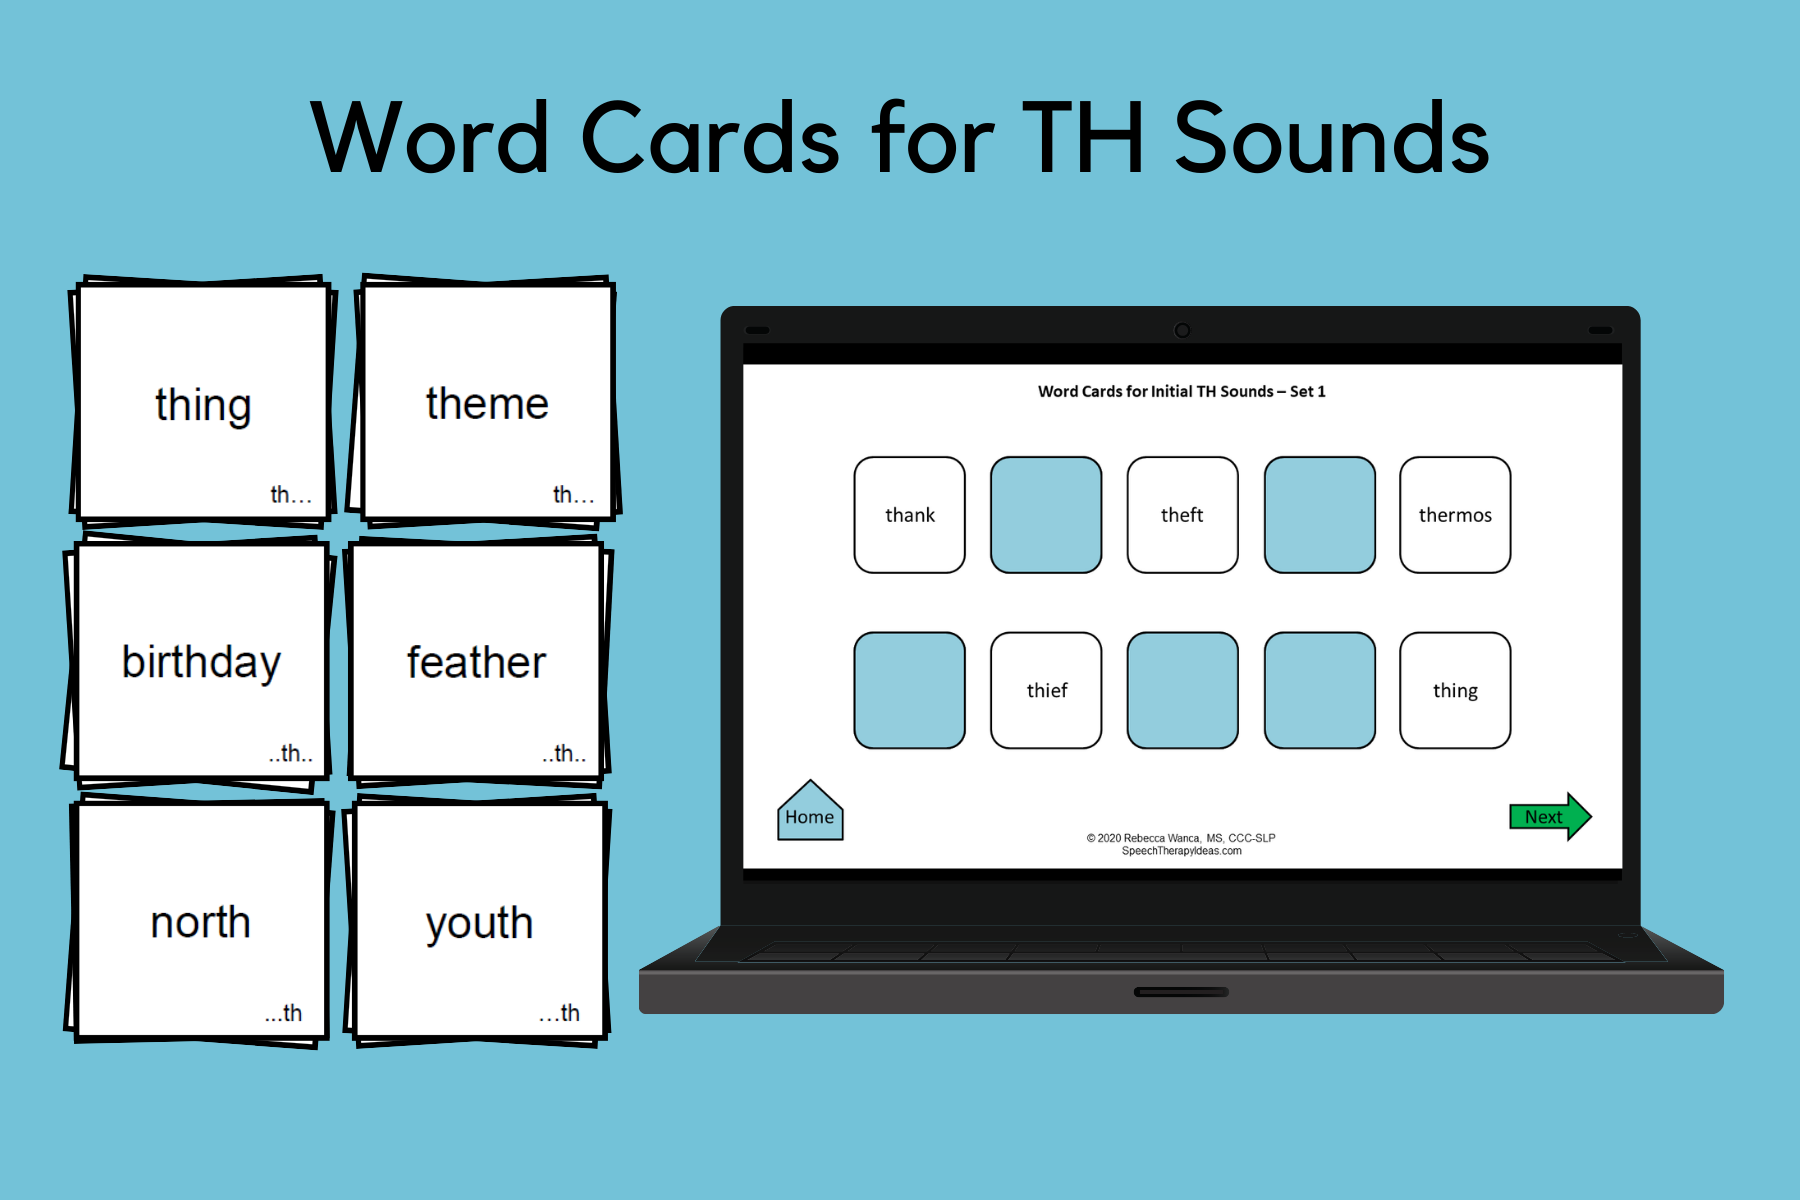 Word Cards For TH Sounds